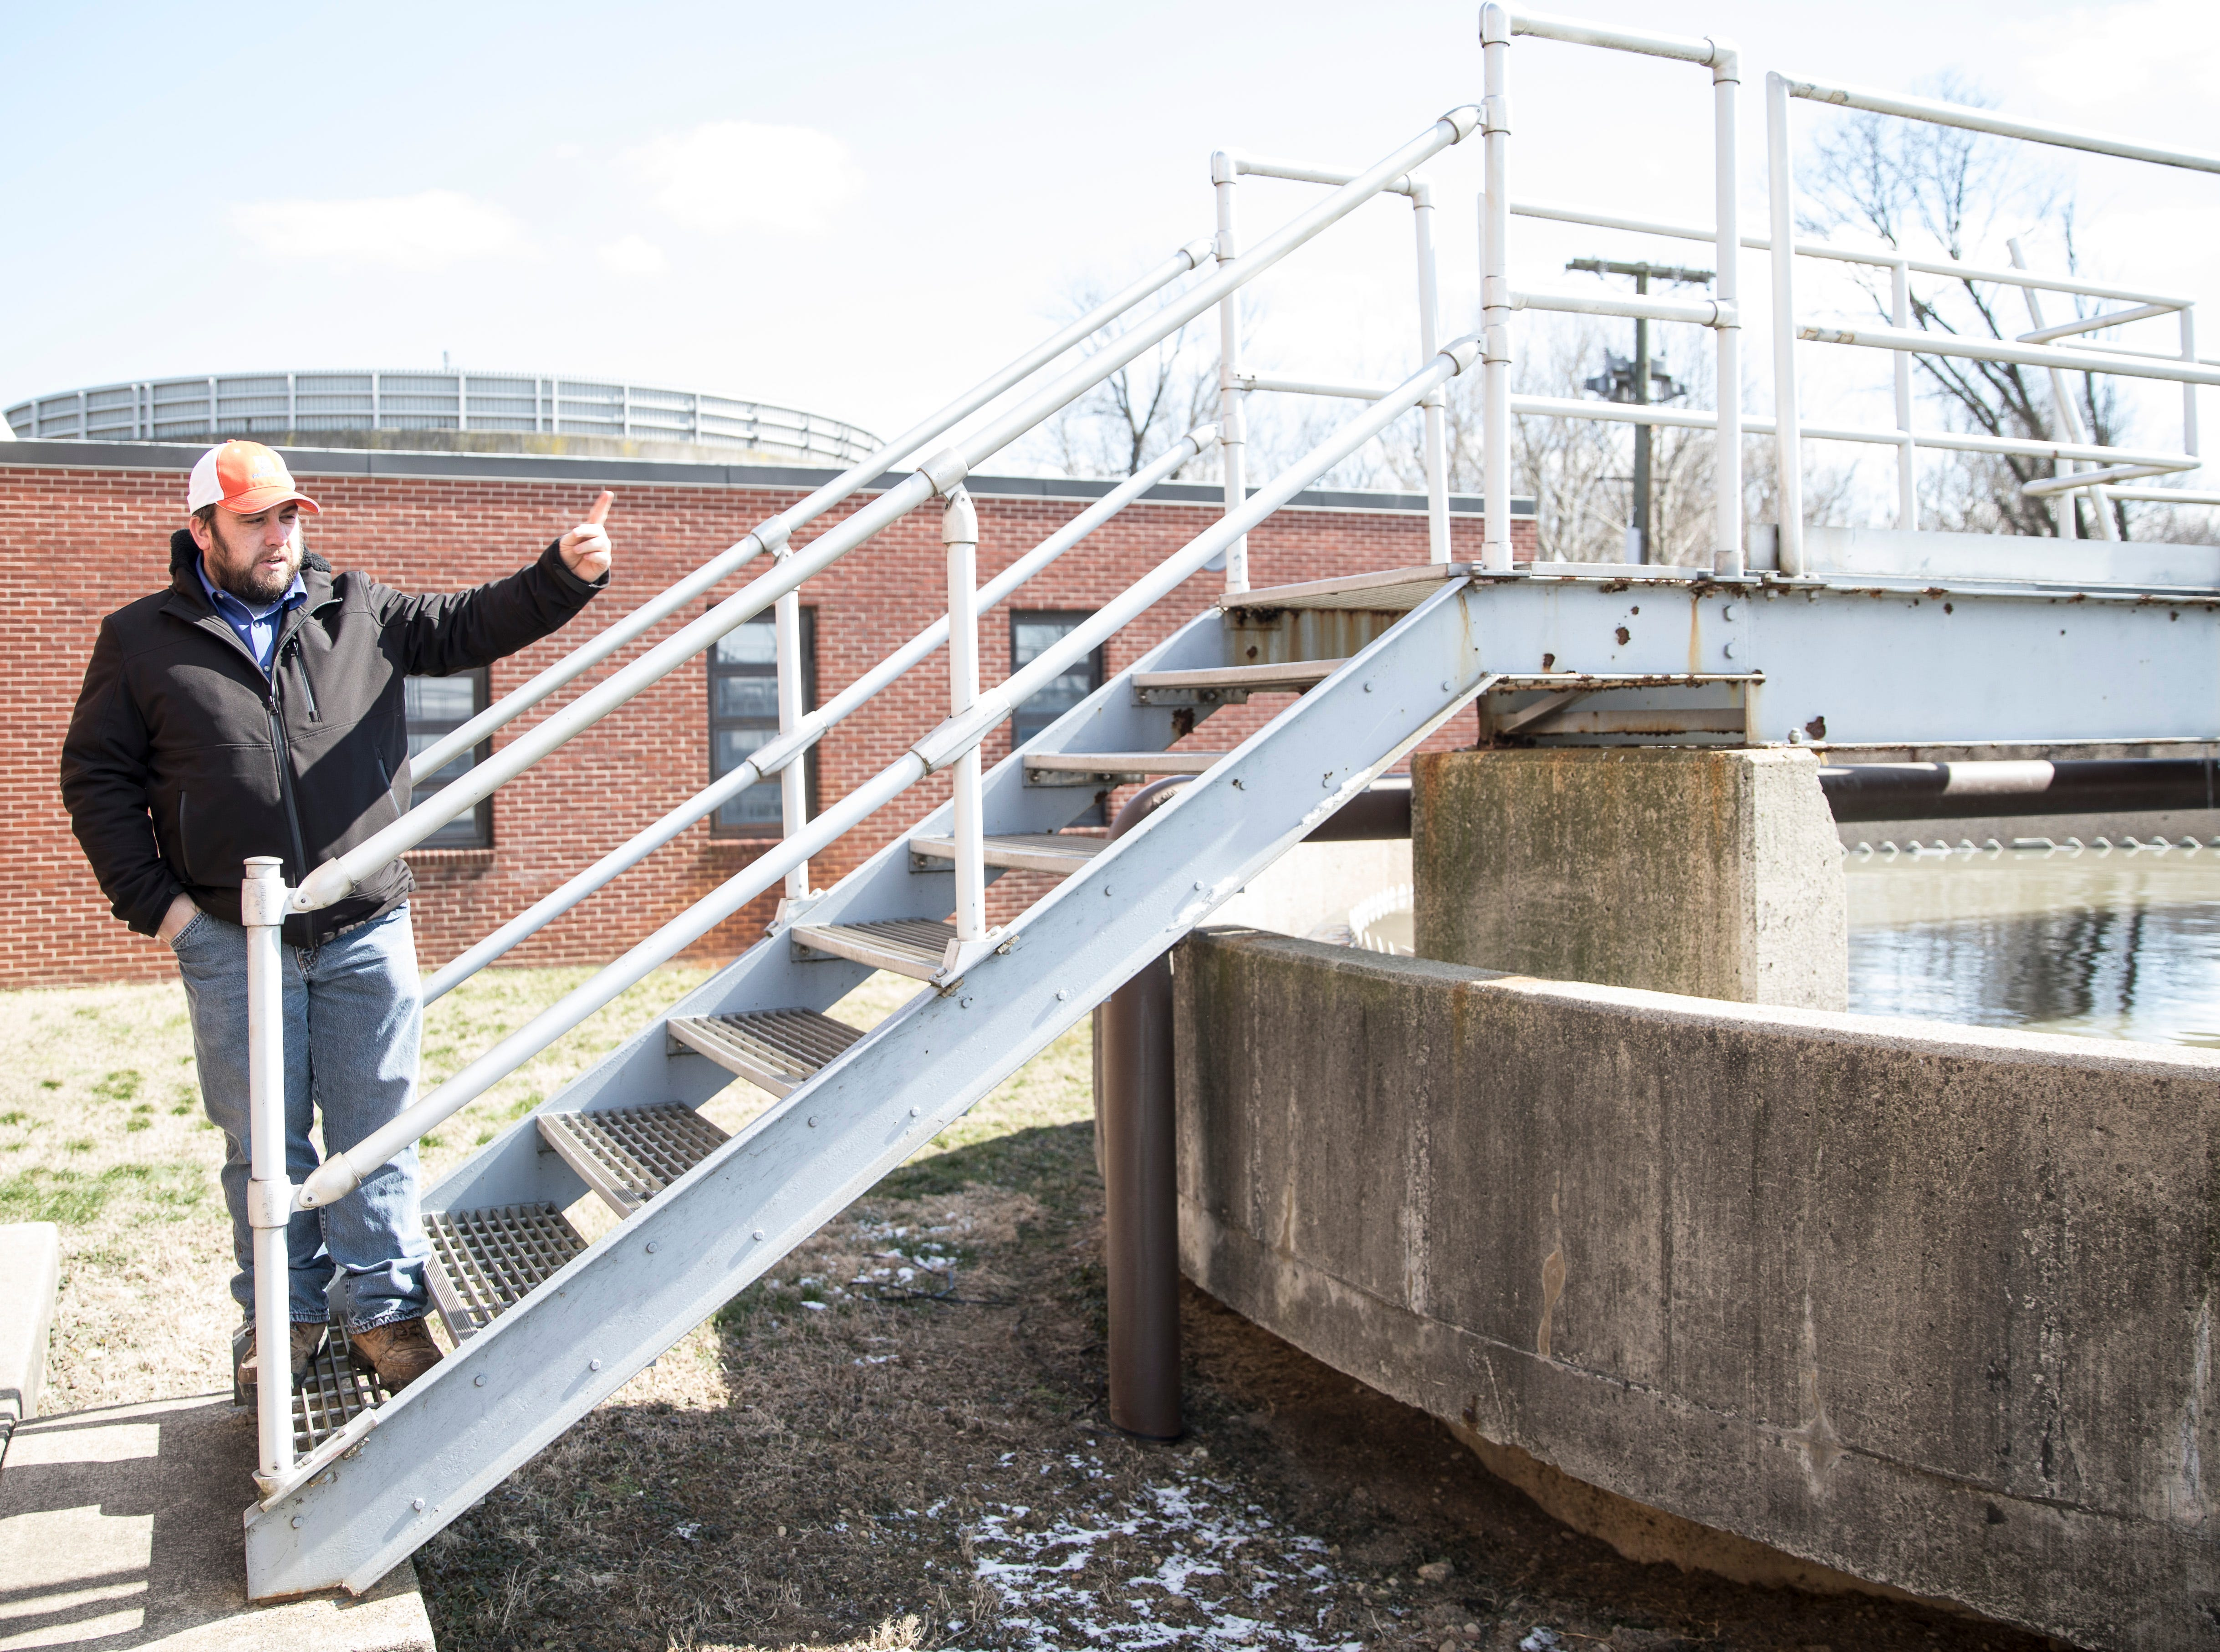 Chillicothe's wastewater treatment facility is experiencing significant problems that could affect how it operates. While a multimillion-dollar rehabilitation project is underway, the plant still has some issues with equipment no longer working, relying on original equipment used when the plant was first built, and difficulties getting parts to repair the older equipment.